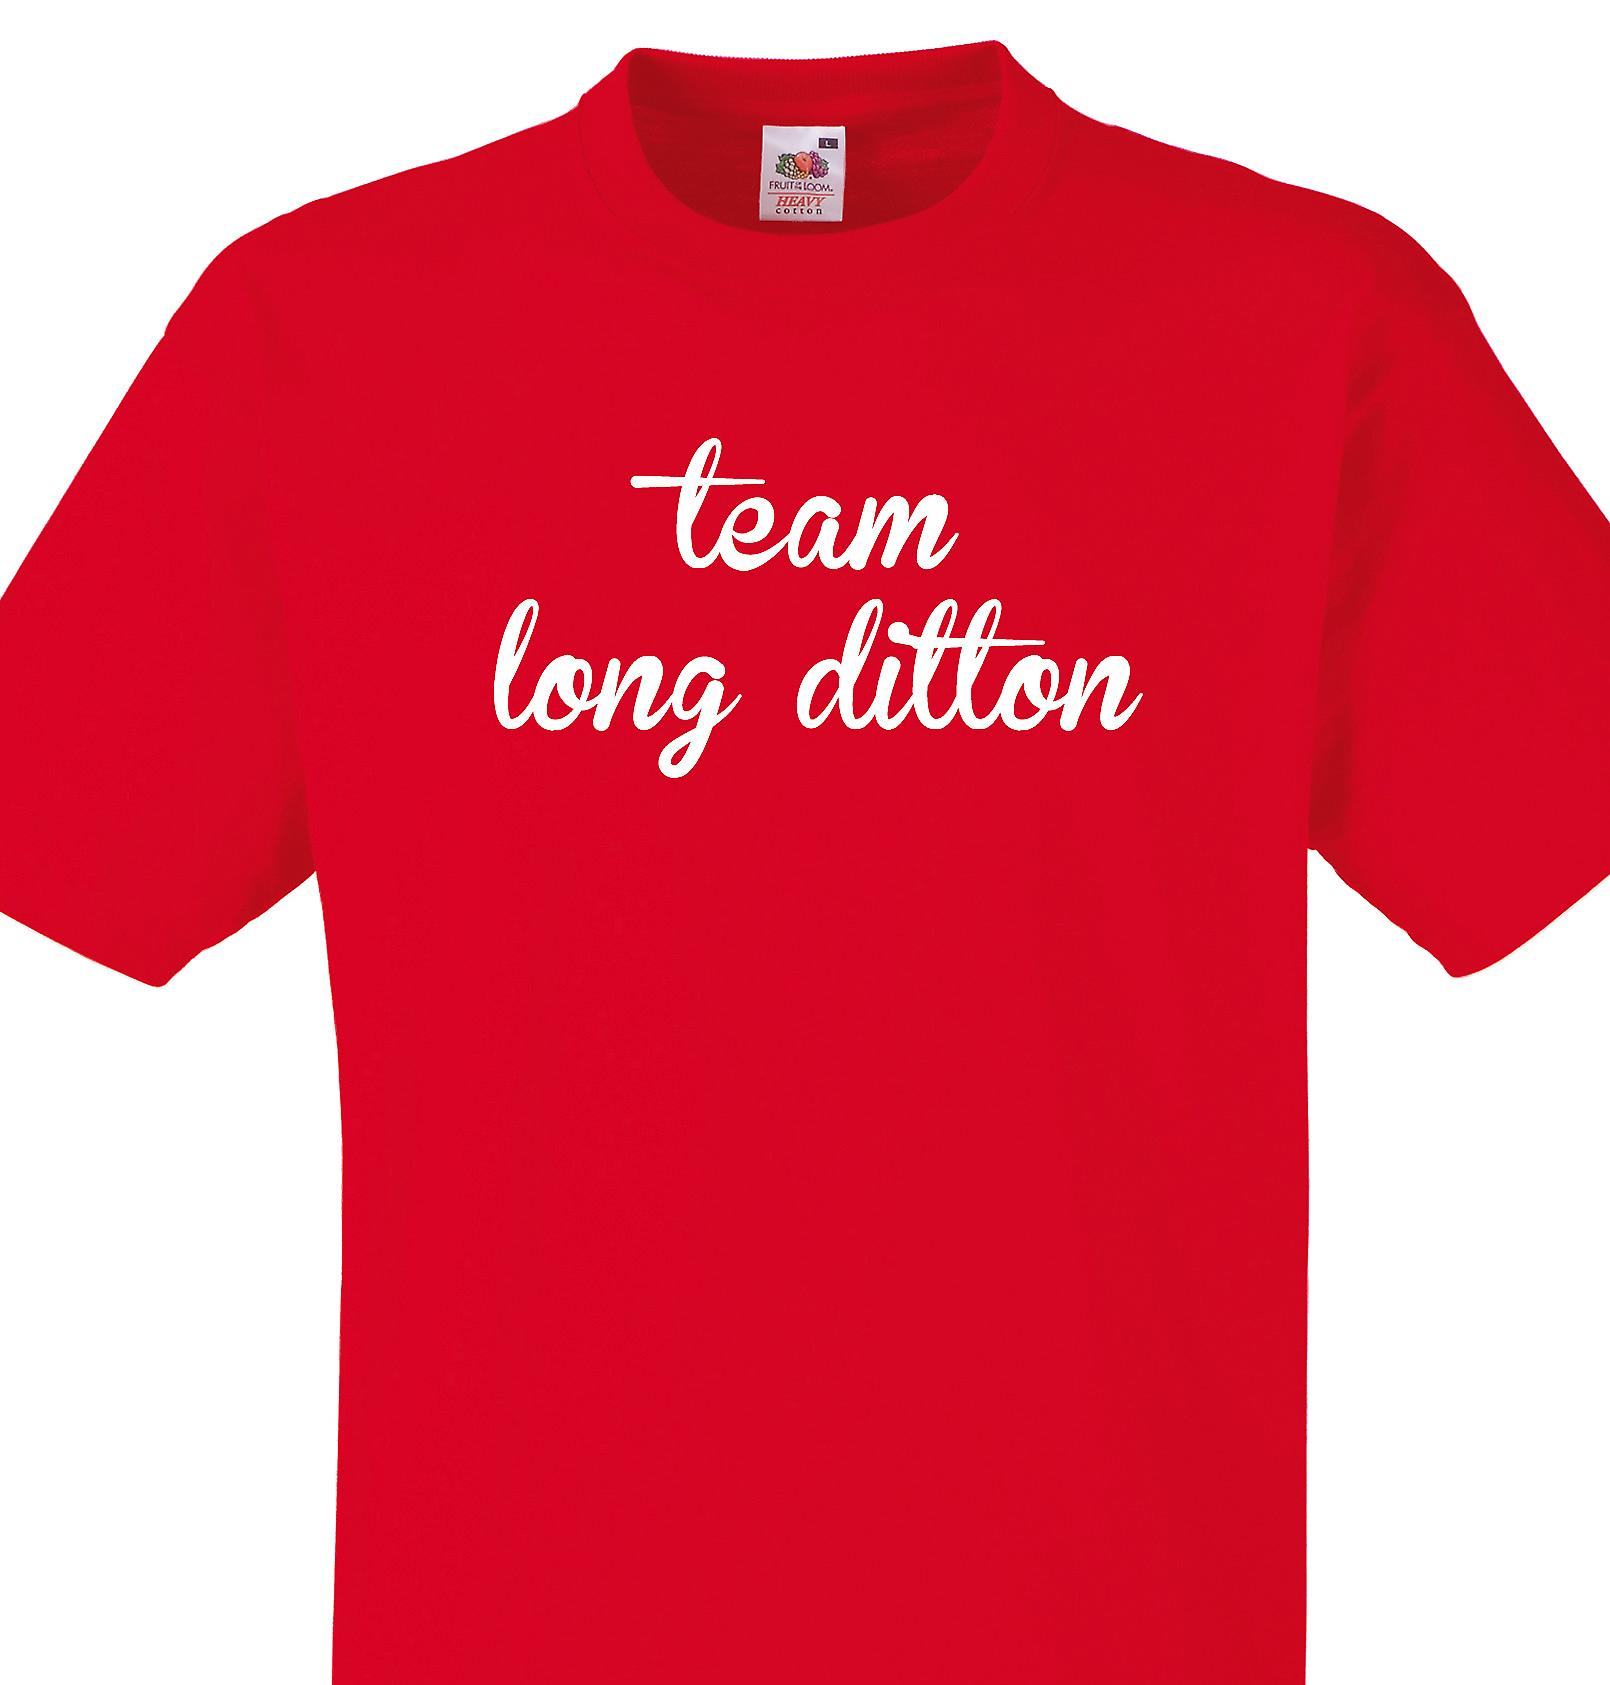 Team Long ditton Red T shirt